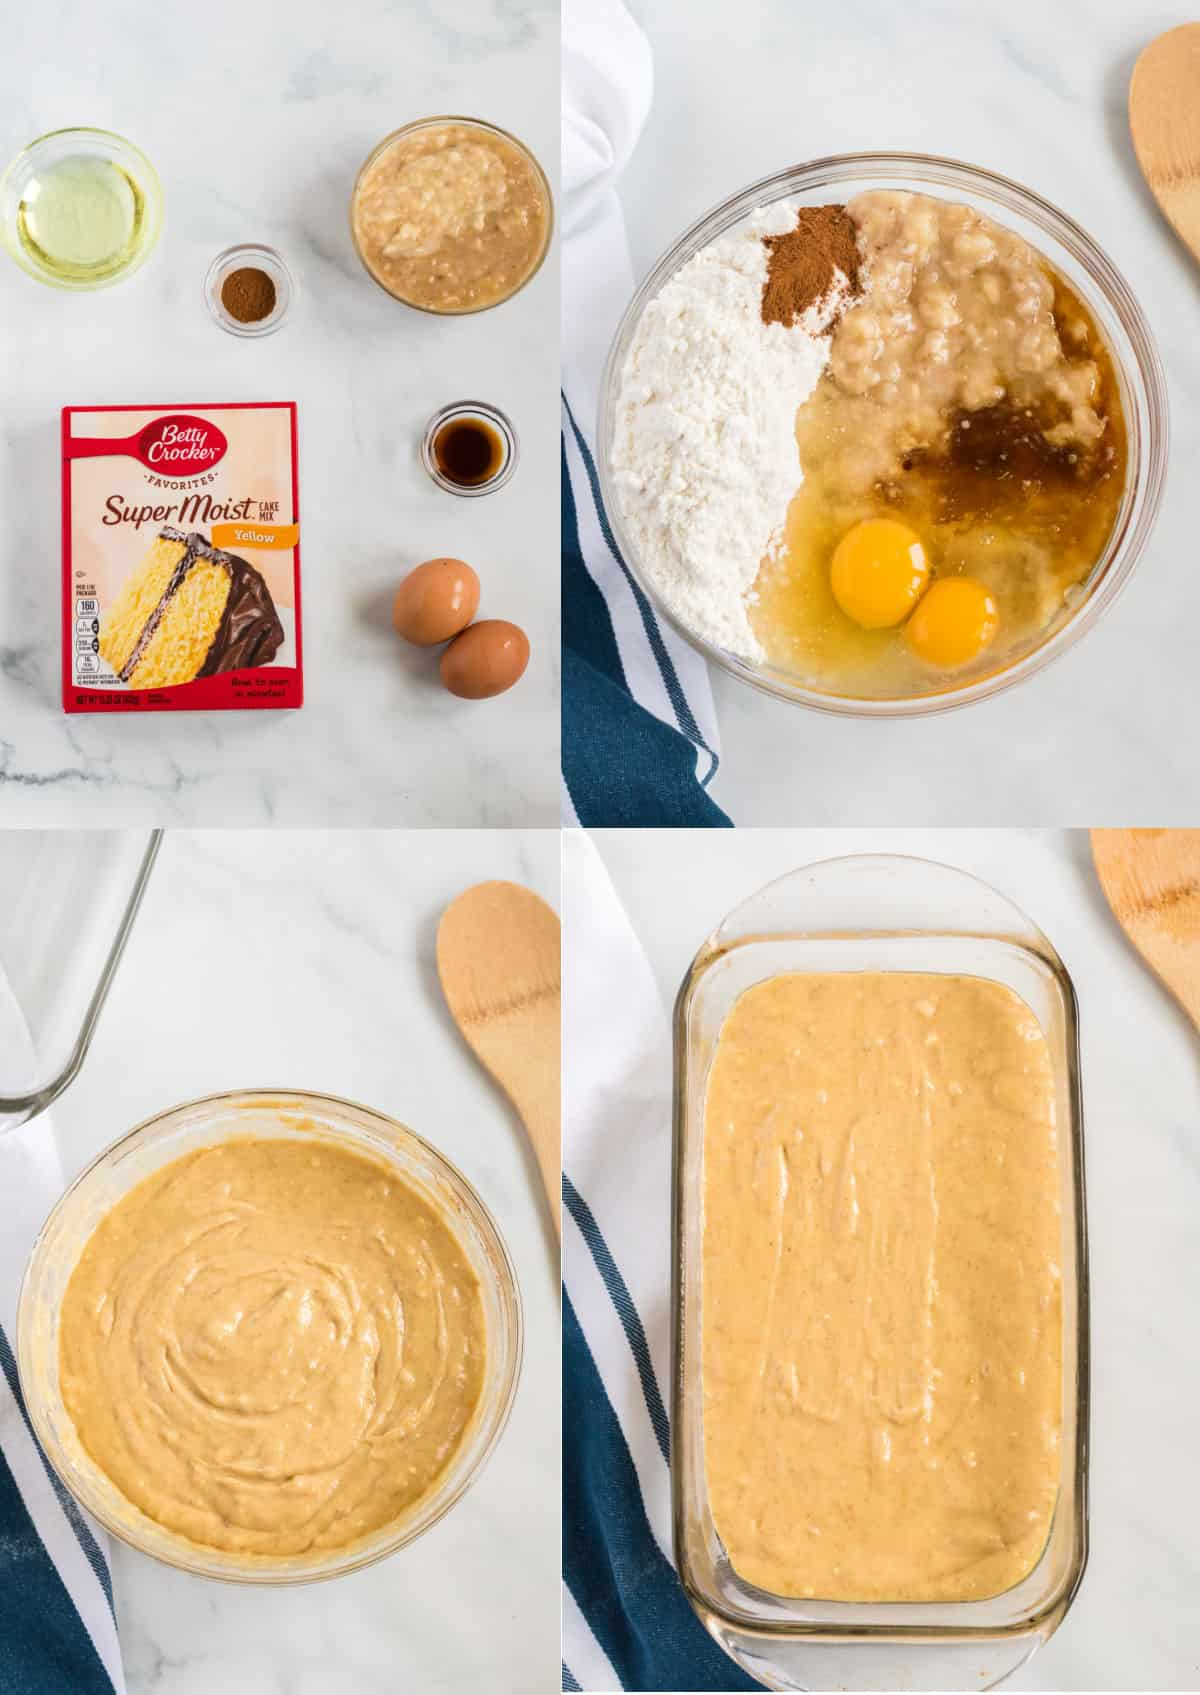 step by step images showing ingredients for the banana bread, mixed in a bowl, and in the baking loaf pan